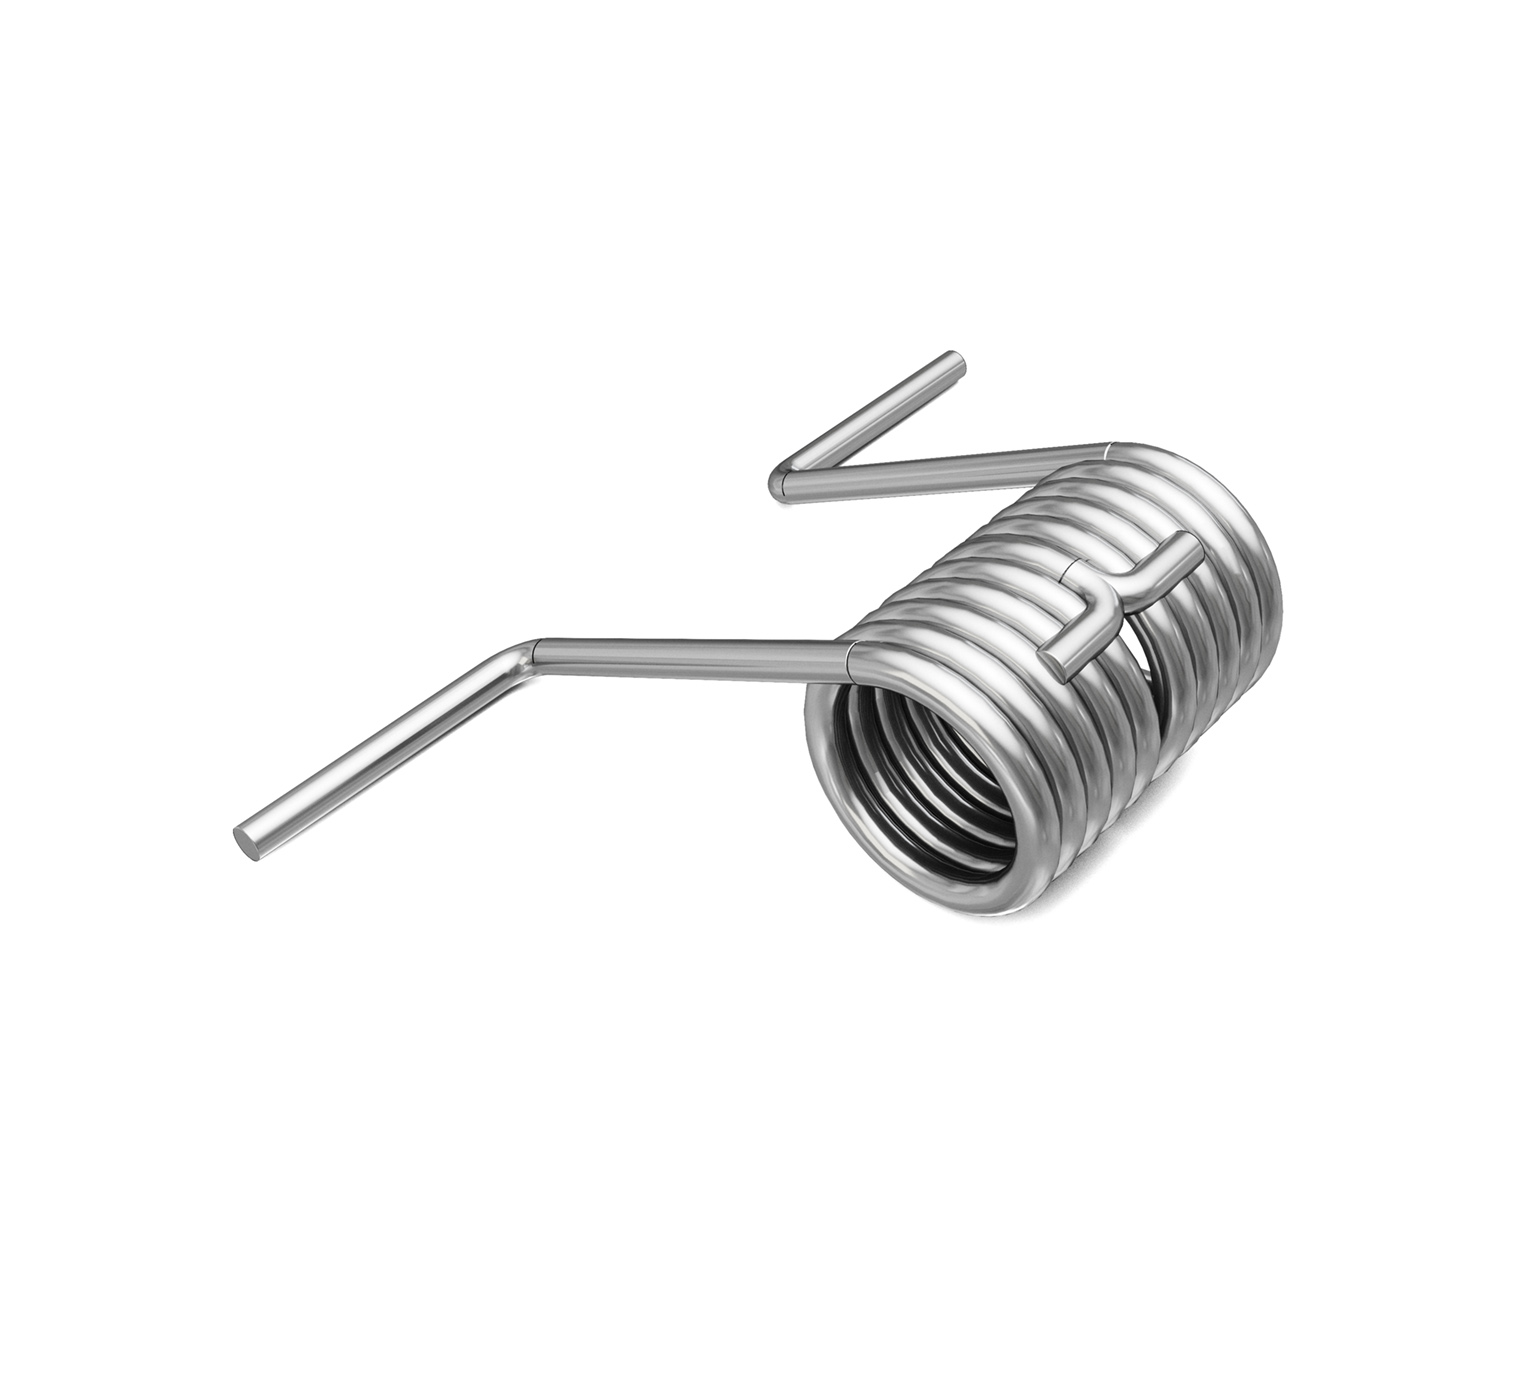 1011344 Stainless Steel Spring - 0.577 ID x 1.813 in alt 1